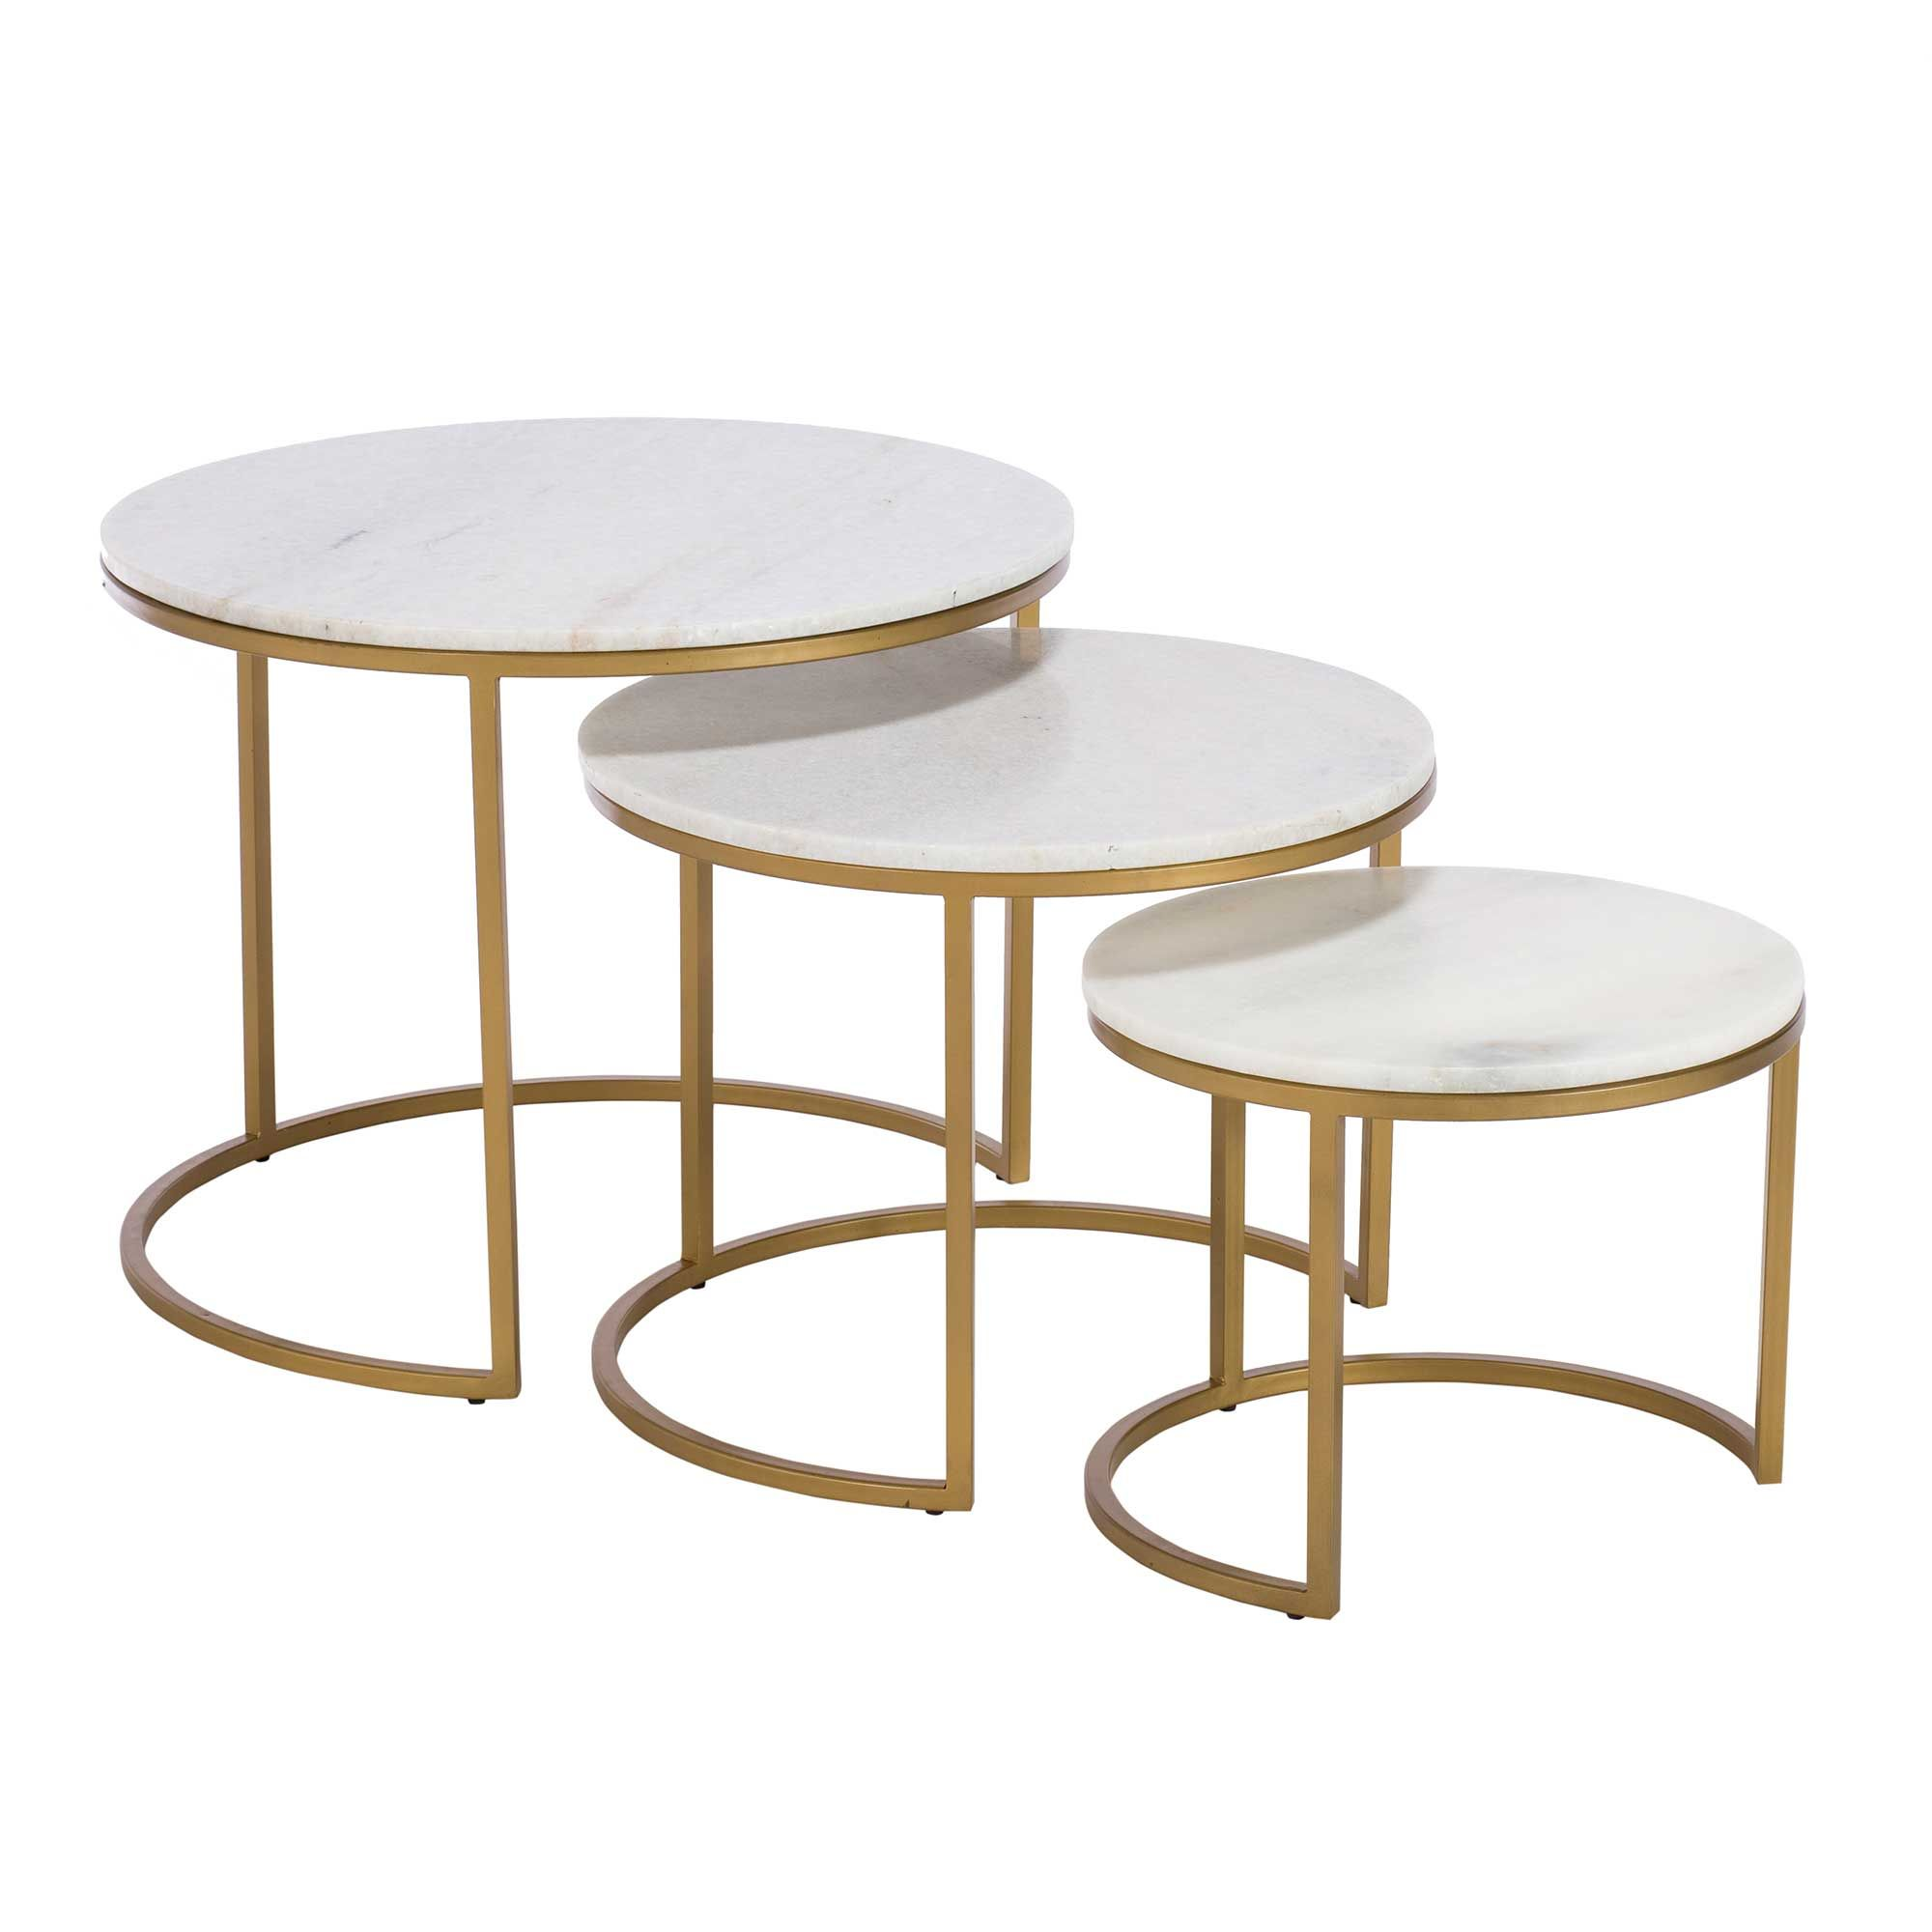 Excellent Gower Marble Nest Of Tables Gold Tables Barker Evergreenethics Interior Chair Design Evergreenethicsorg